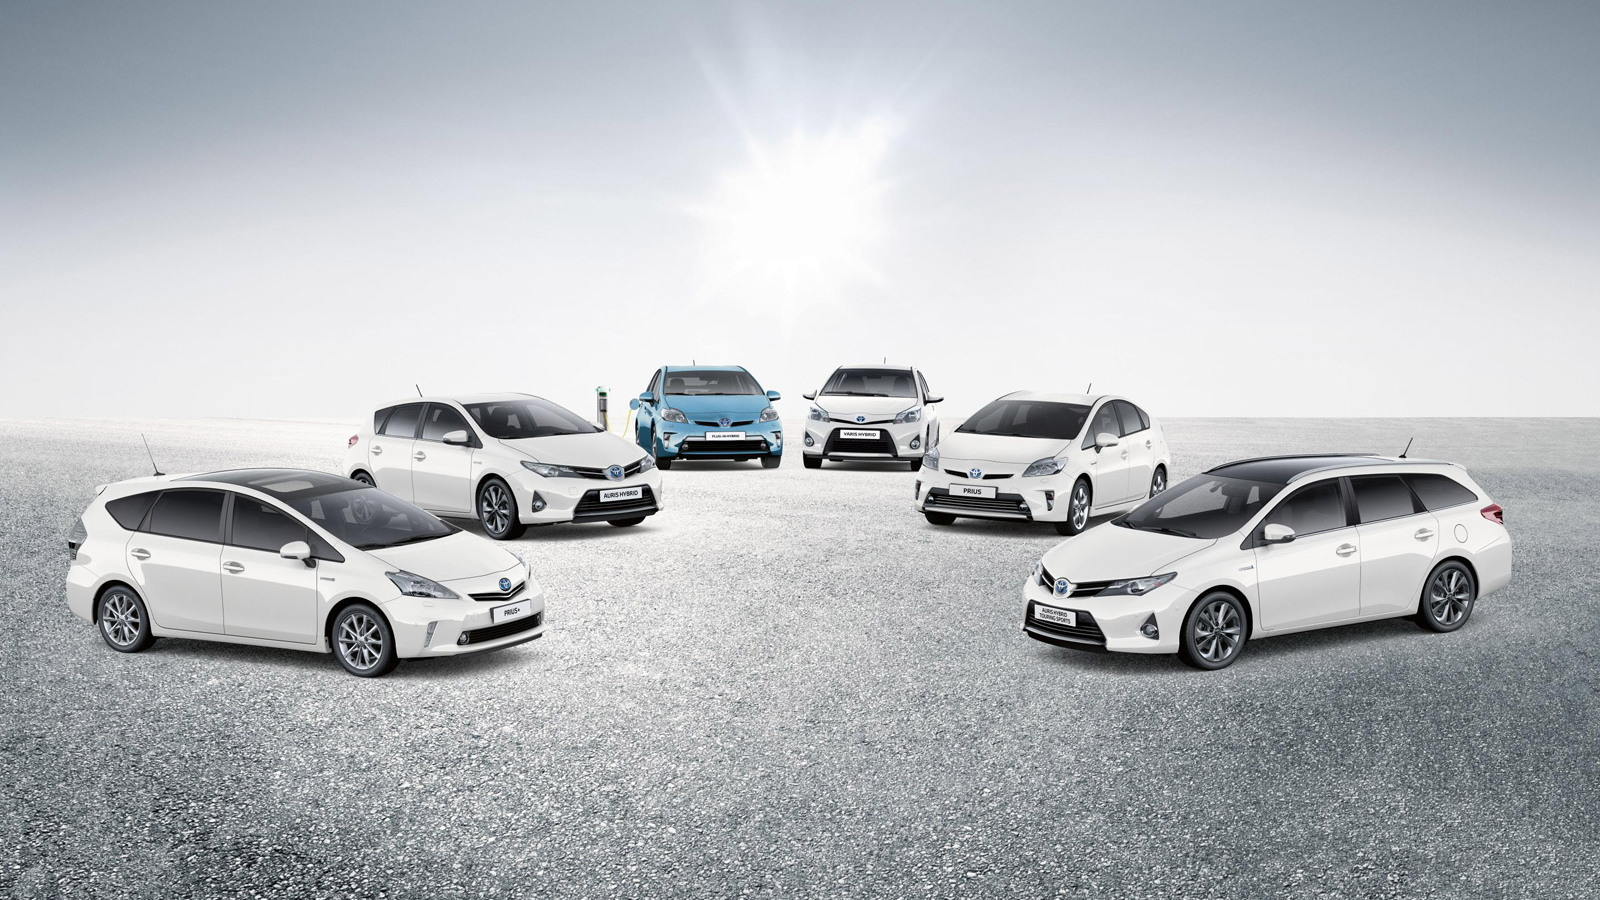 Array of Toyota hybrid vehicles